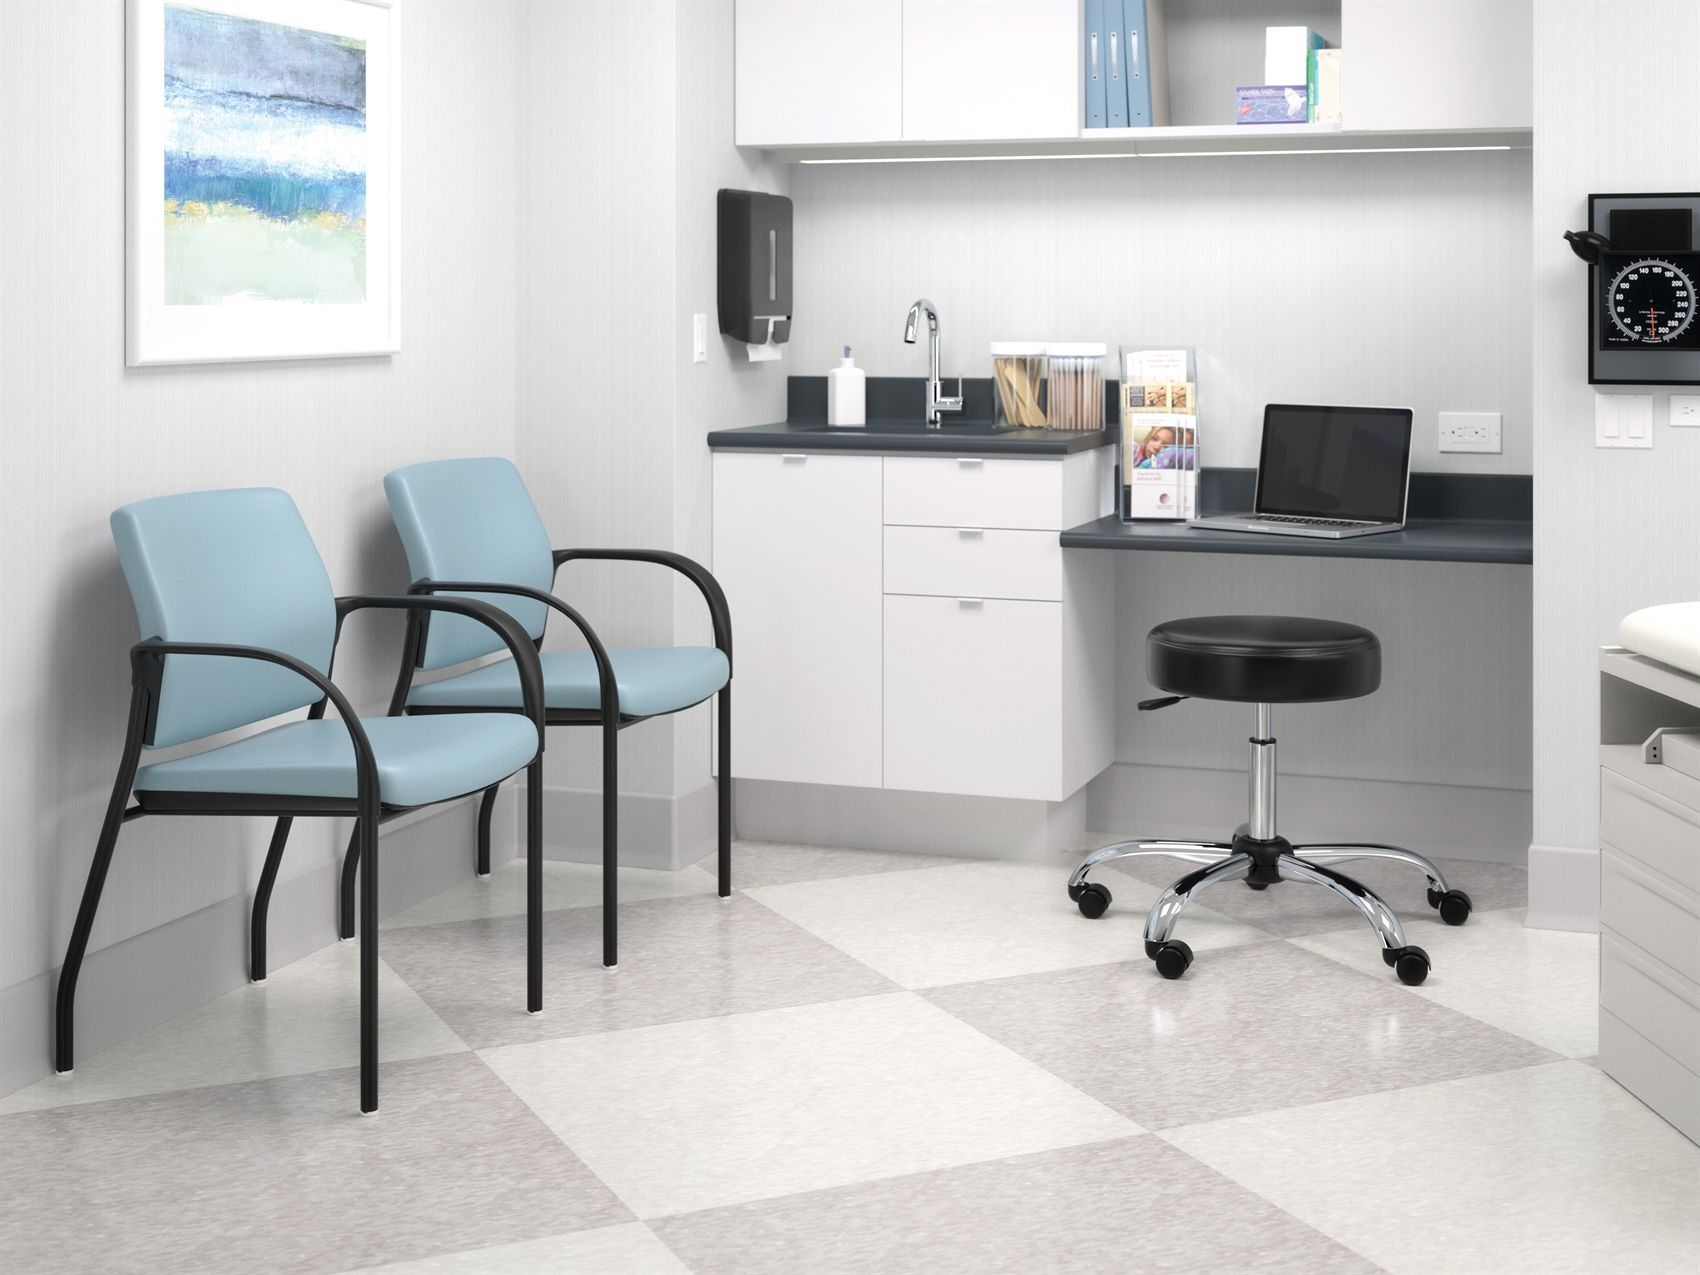 HON Healthcare Exam room. Learn more at